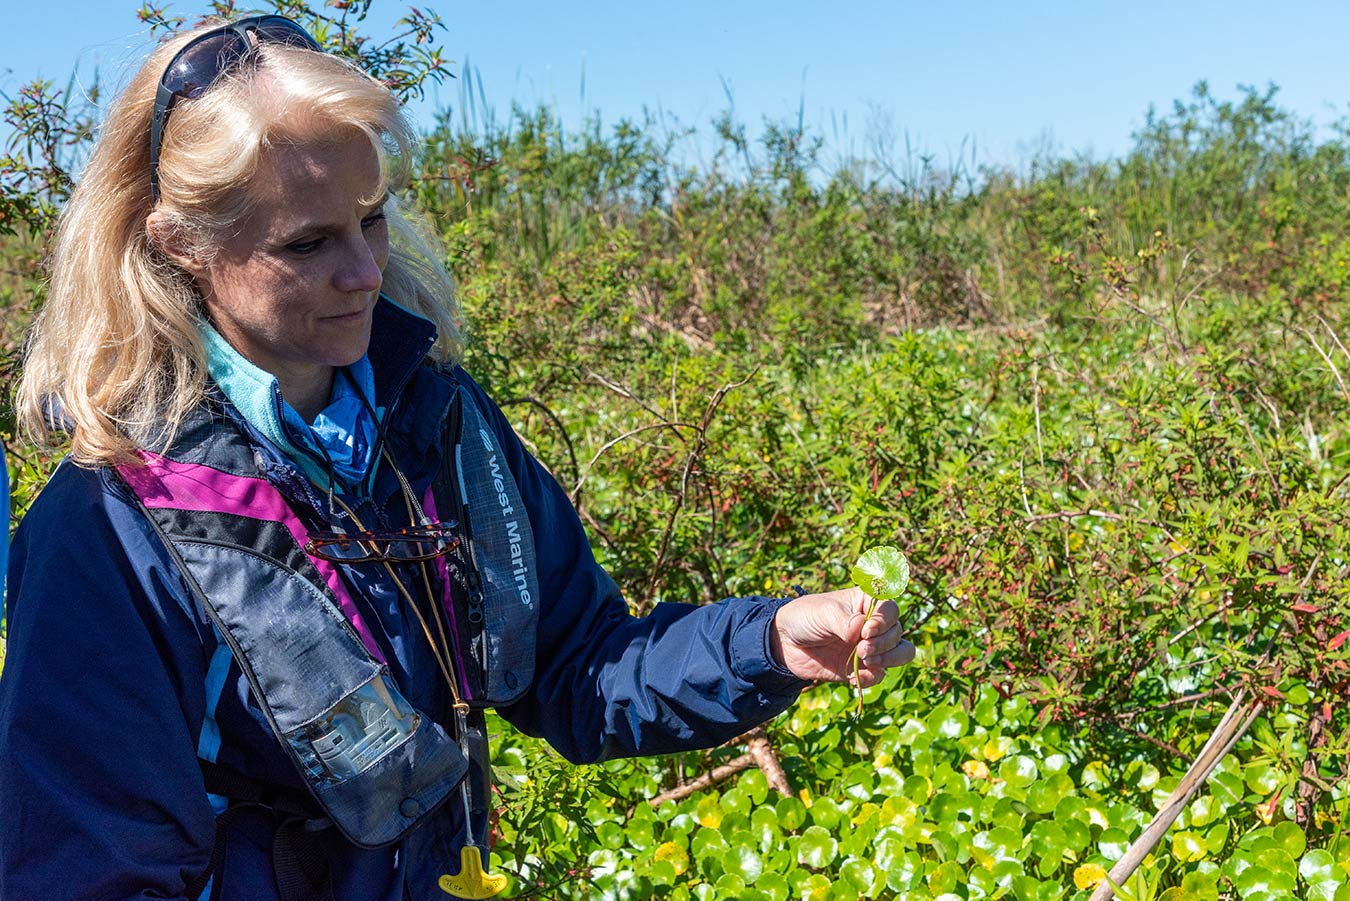 Kim Ponzio conducts a survey of vegetation at the headwaters of the St. Johns River.